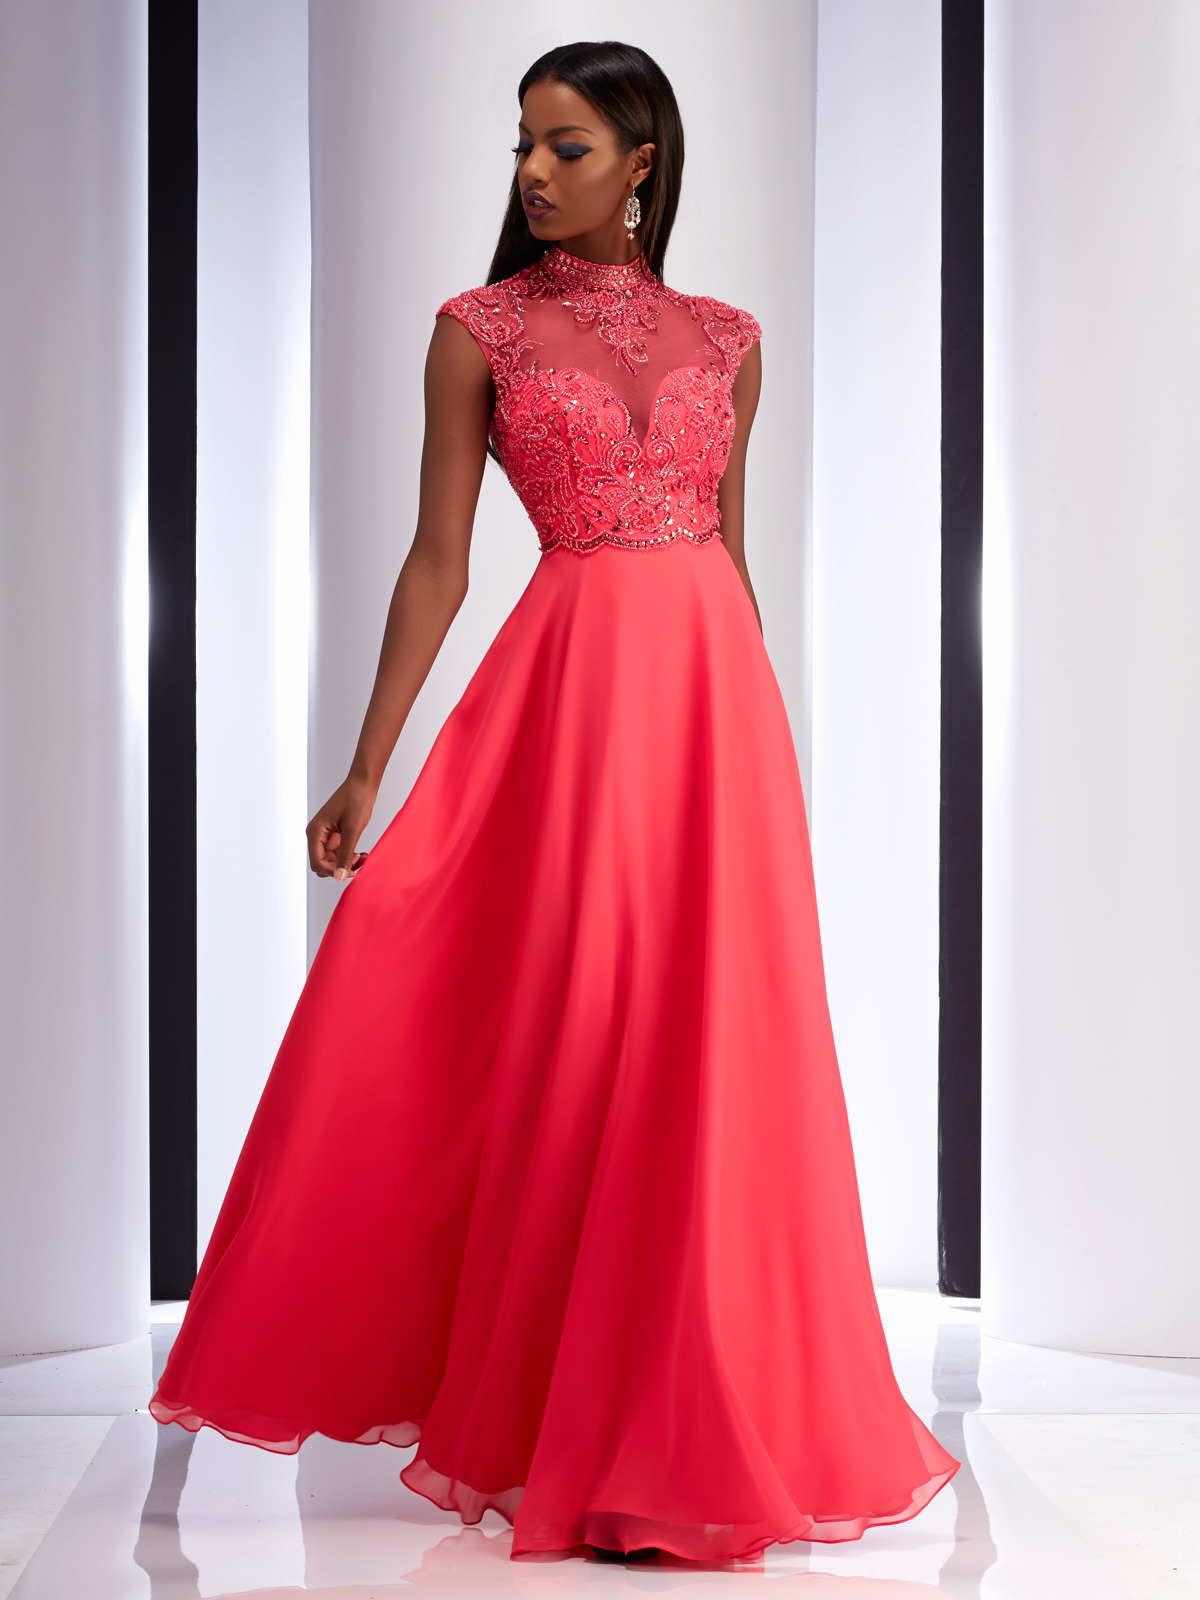 Clarisse 2735 Prom Dress | Promgirl.net